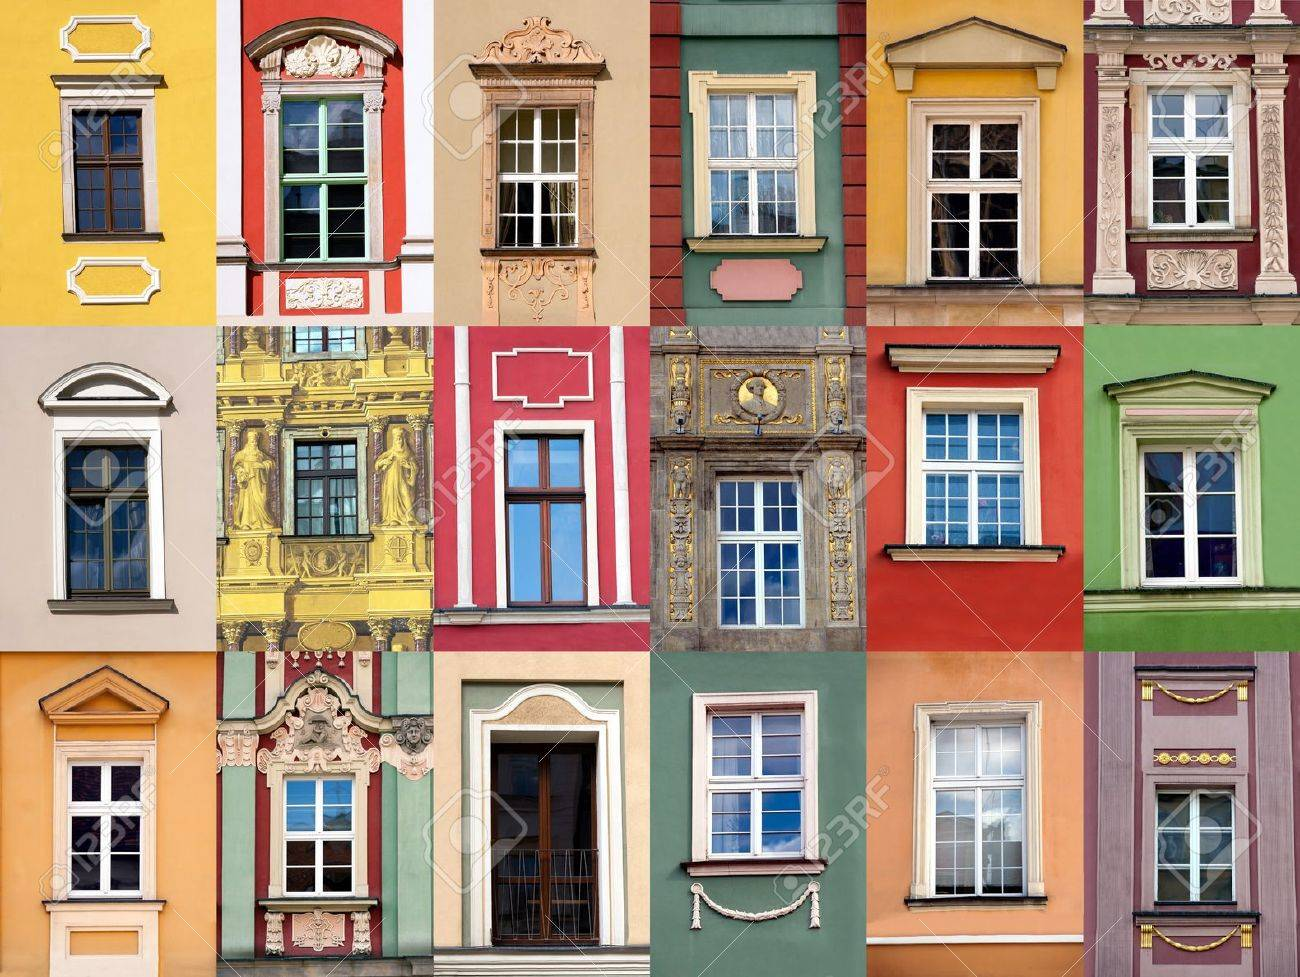 Set of windows at colorful front of building - 14081470